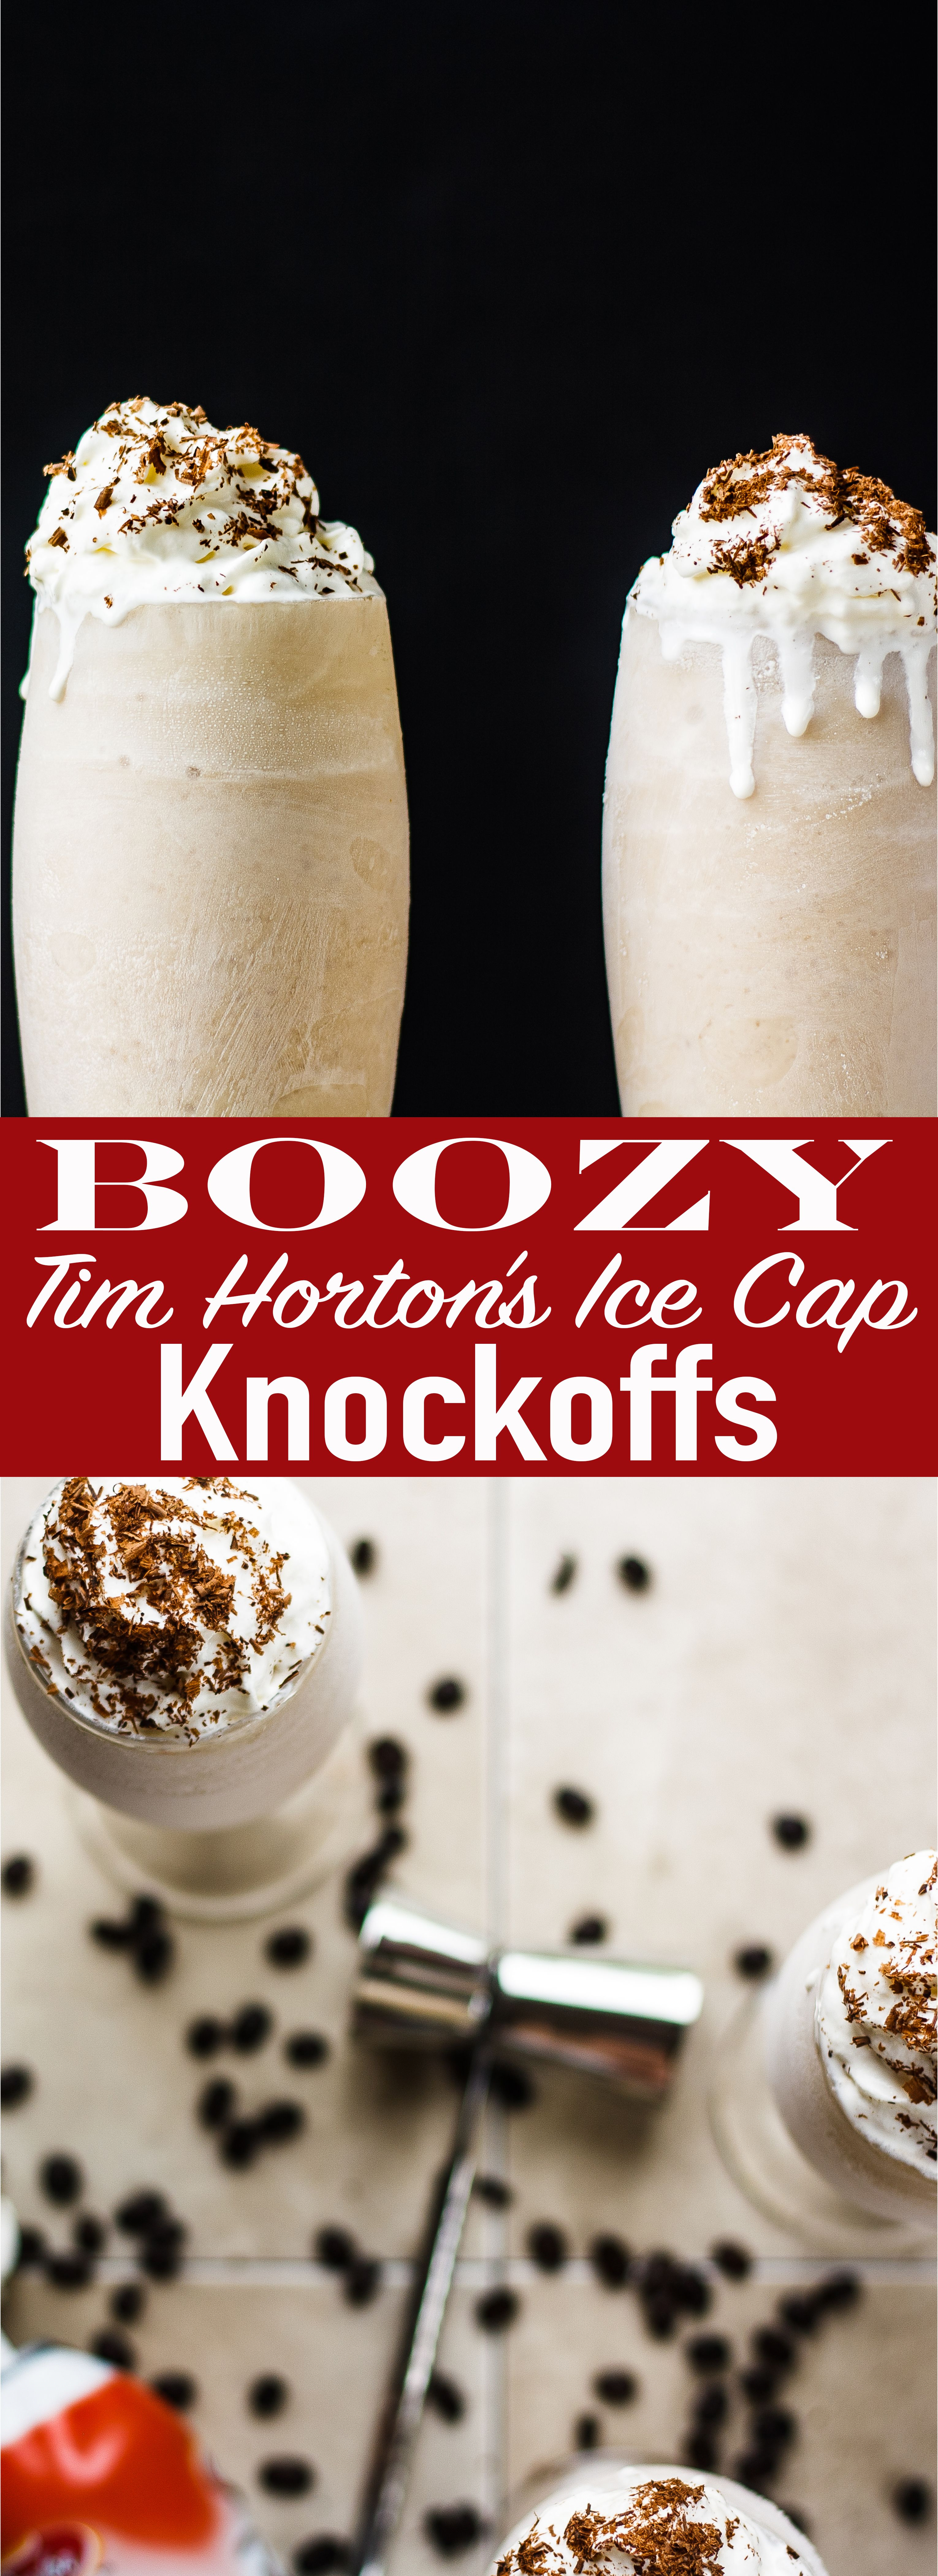 Cool and refreshing these boozy tim hortons iced caps